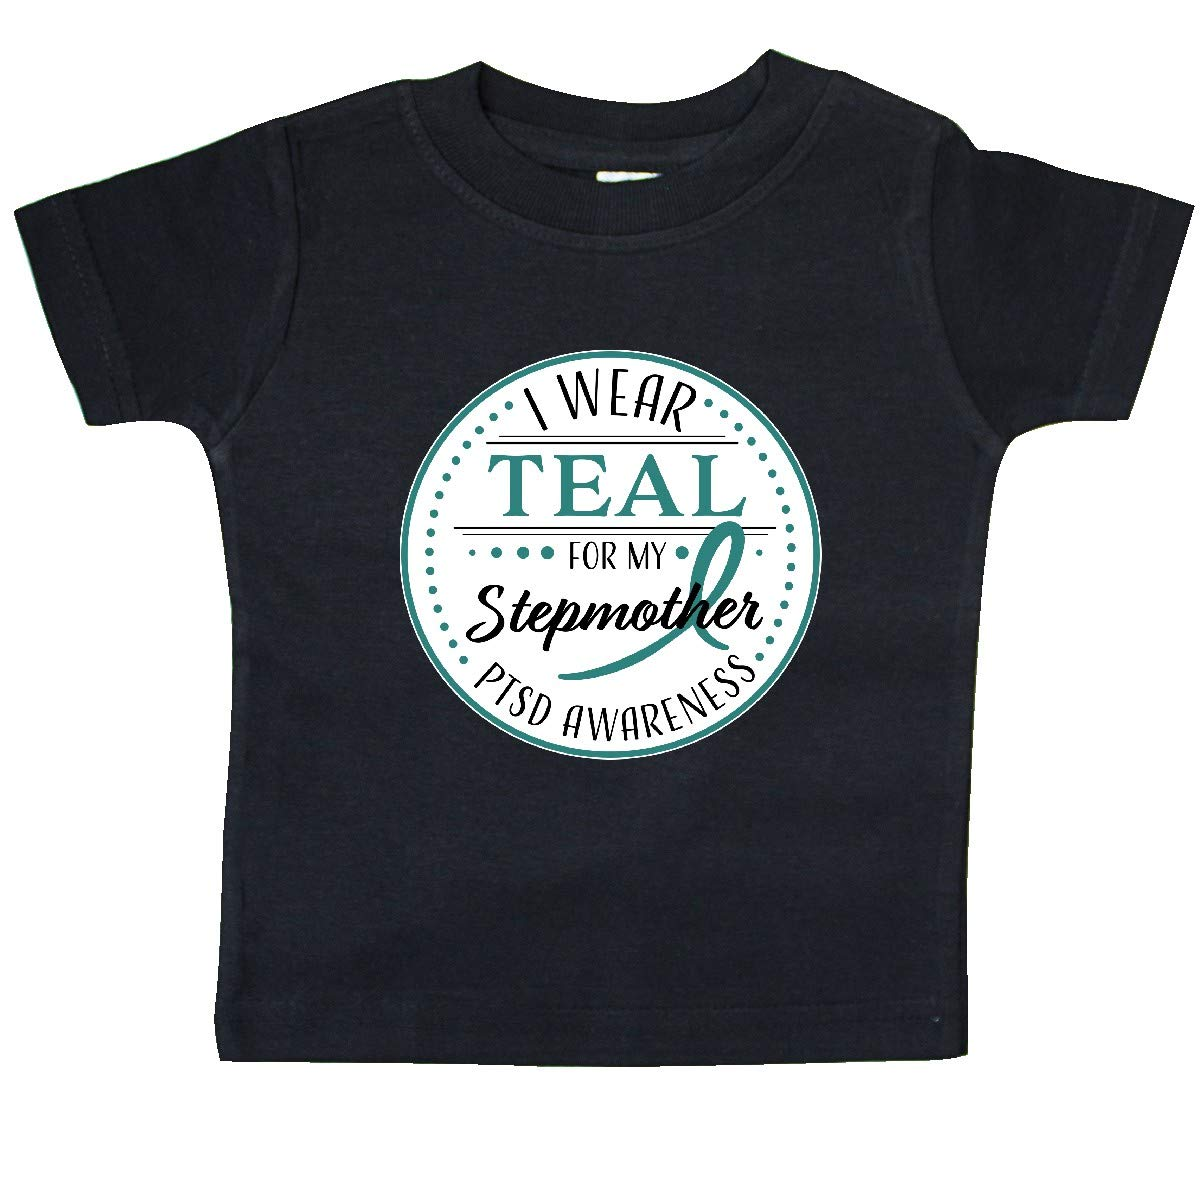 inktastic I Wear Teal for My Stepmother PTSD Awareness Baby T-Shirt